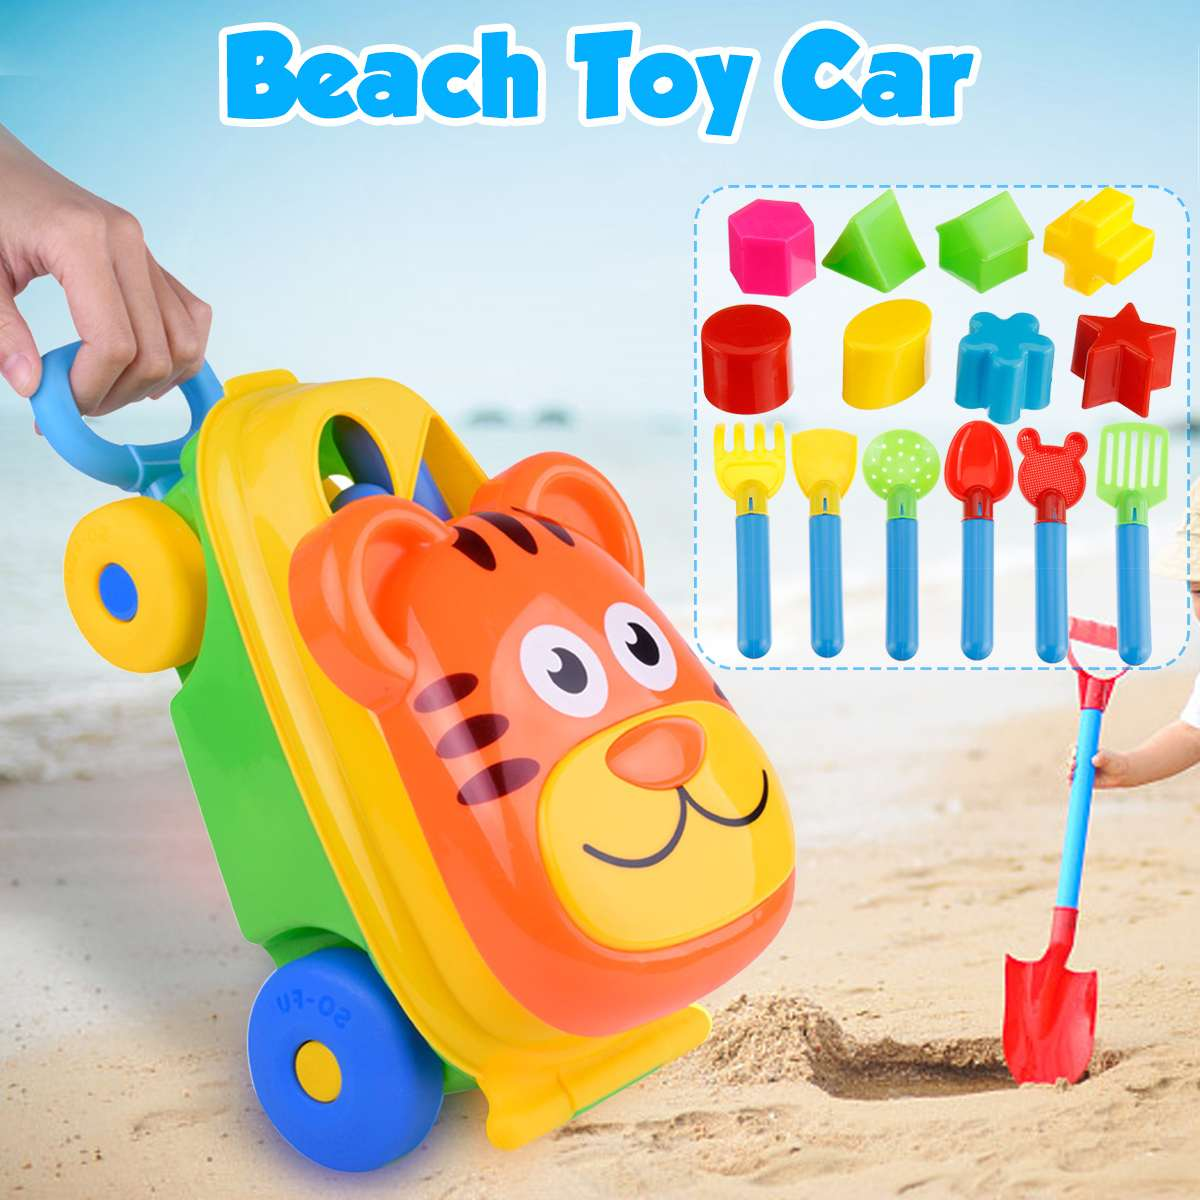 15Pcs Beach Swim Toys Car Trolley Sand Play Toy Set Organizer Bucket For Kids Eco-Friendly Colorful Plastic Unique Shapes